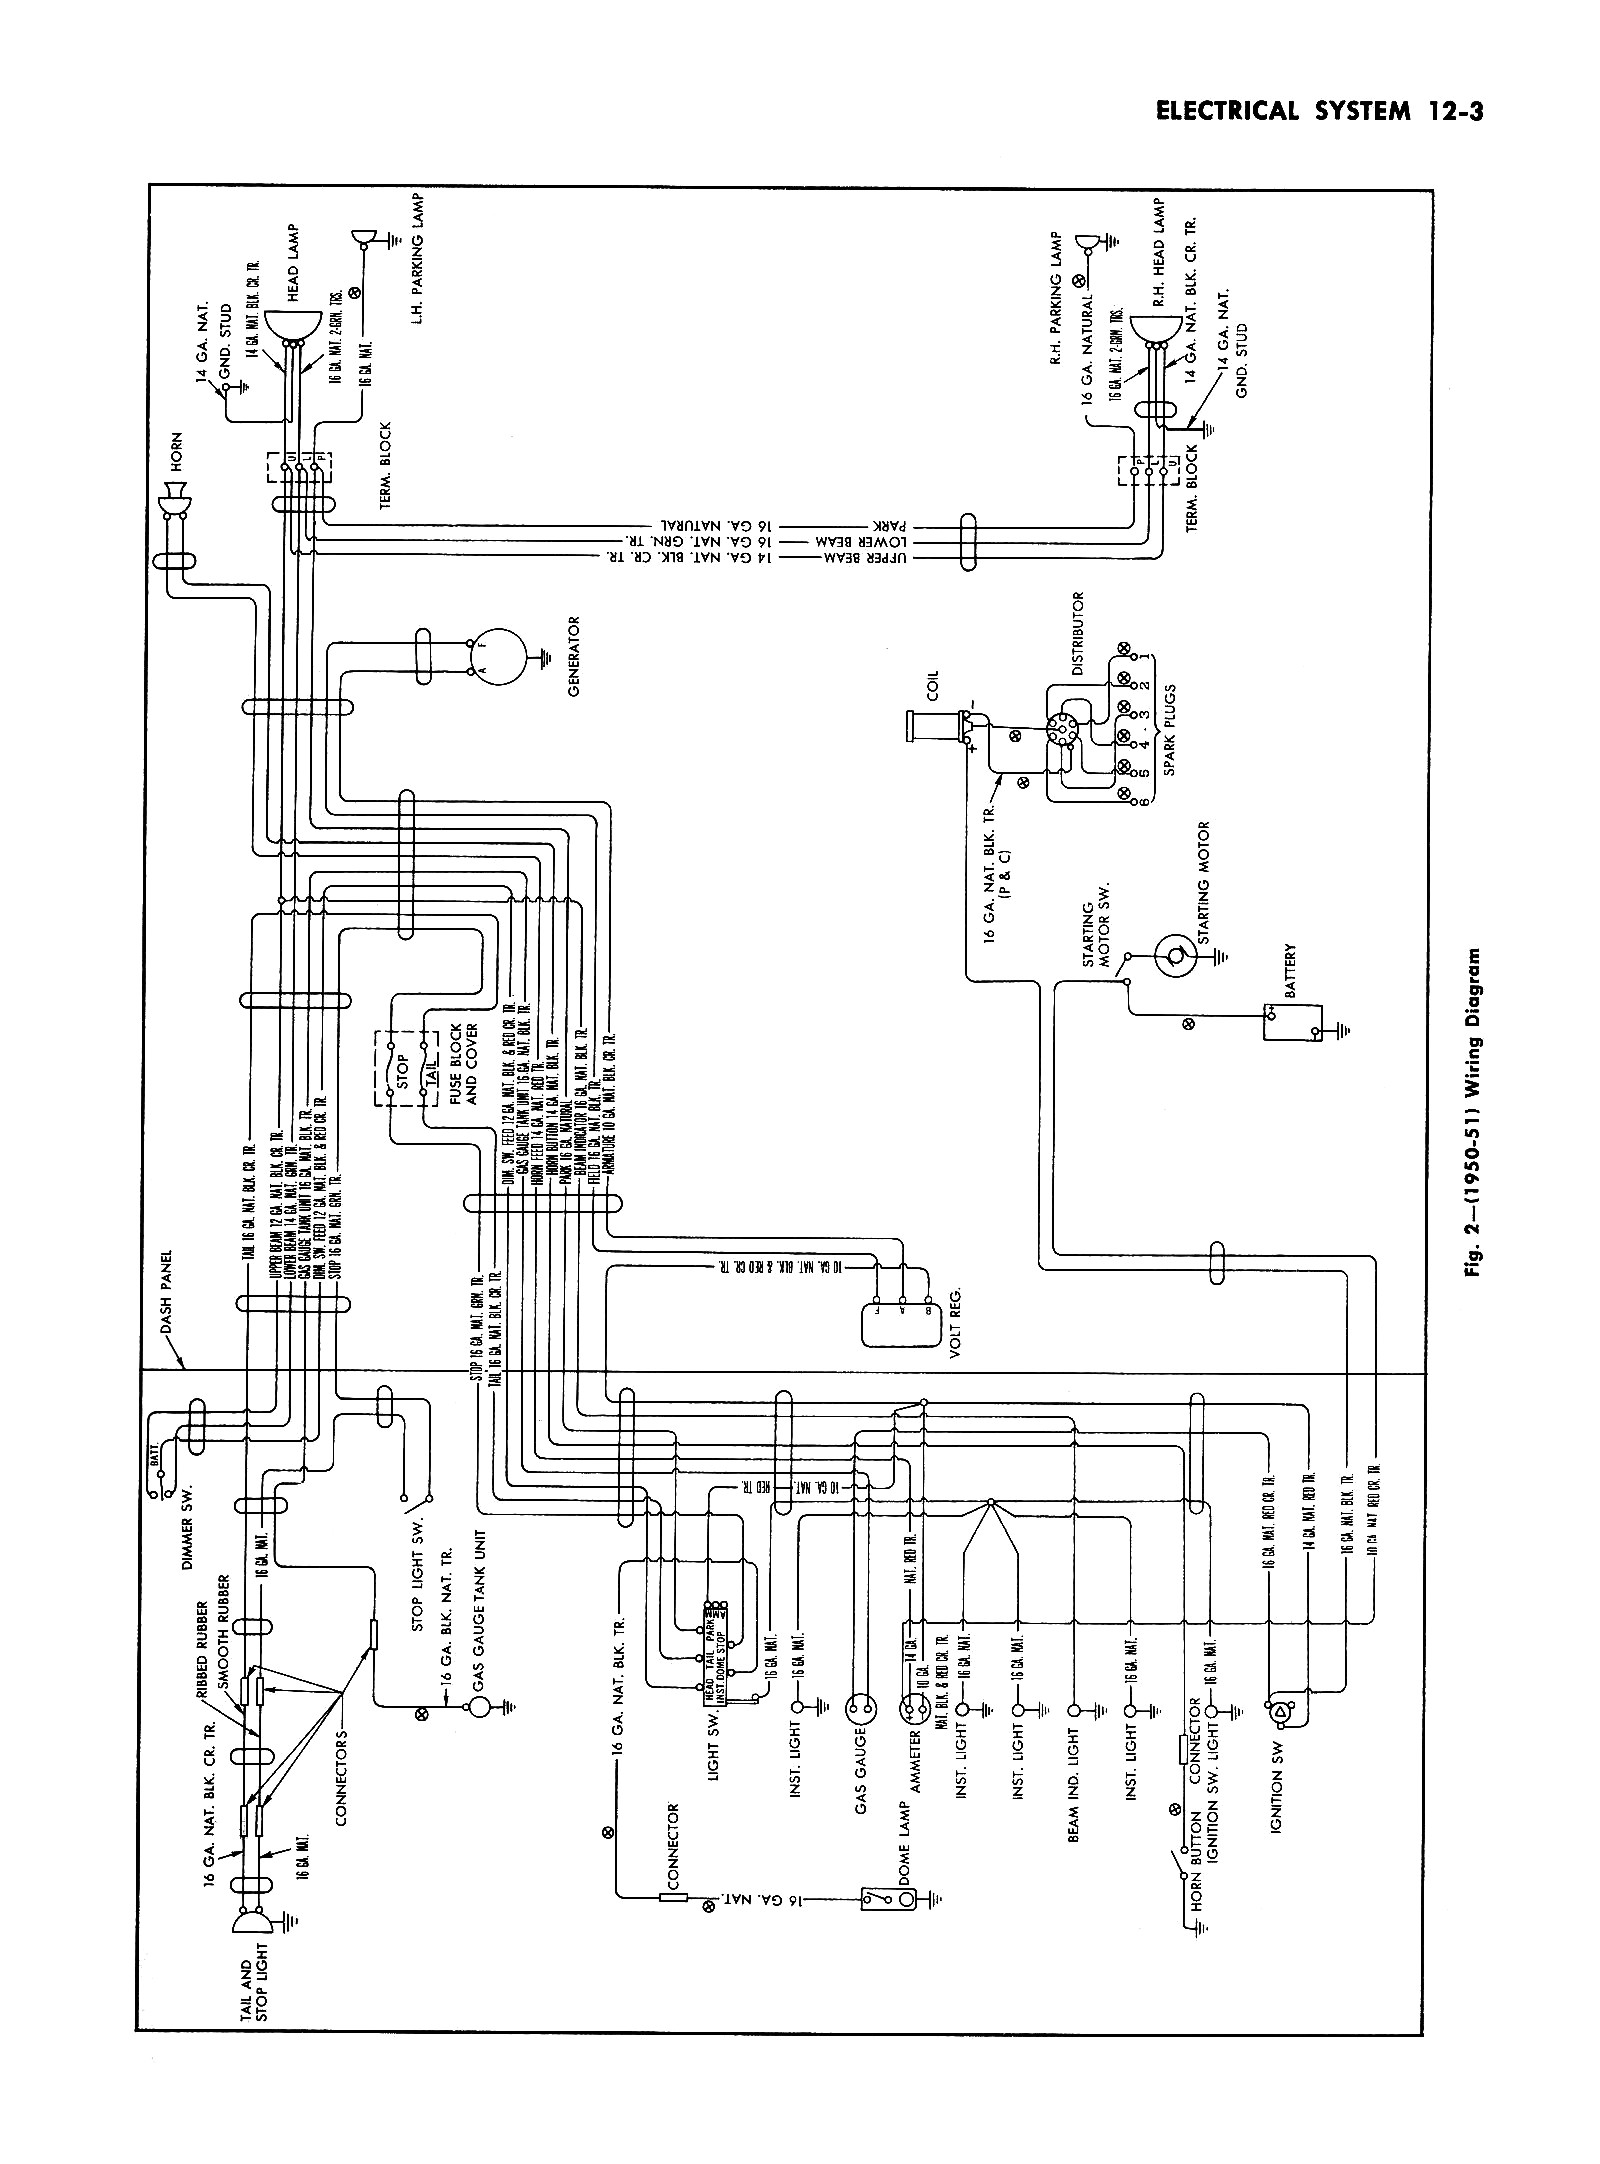 50car1?resized665%2C899 morris minor wiring diagram efcaviation com morris minor wiring diagram pdf at soozxer.org